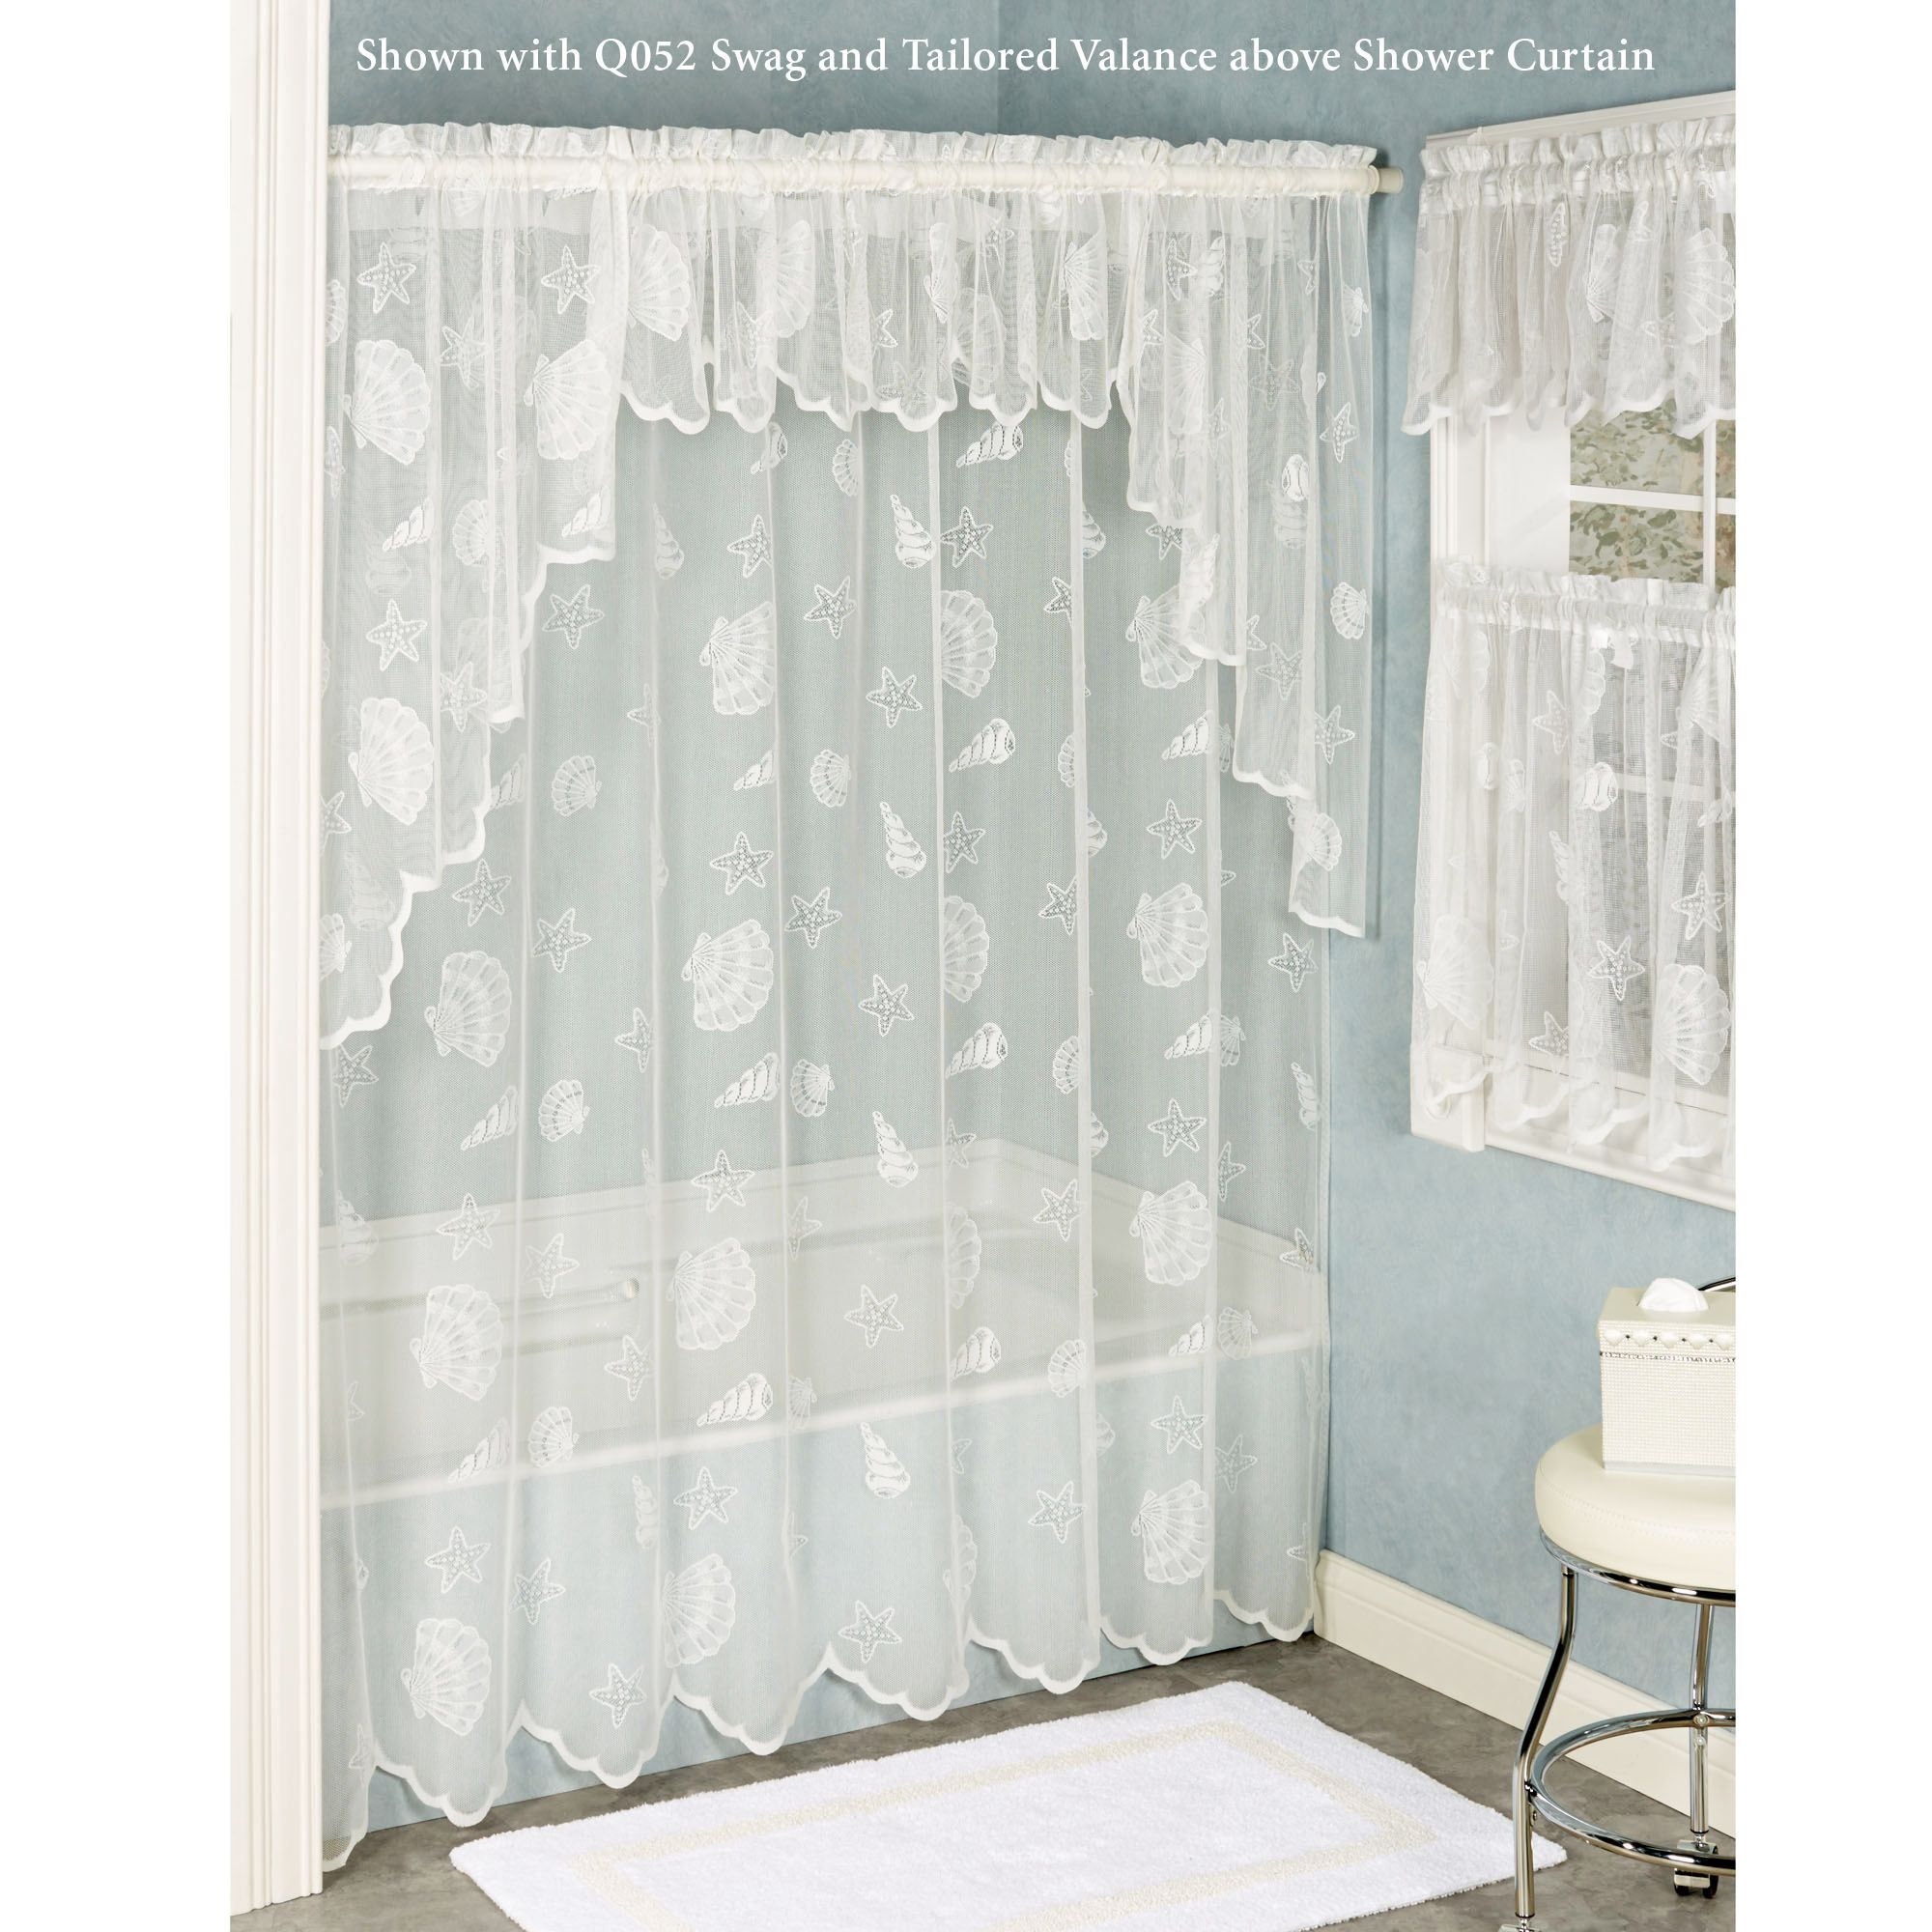 Seashells Lace Shower Curtain Lace Shower Curtains Shower